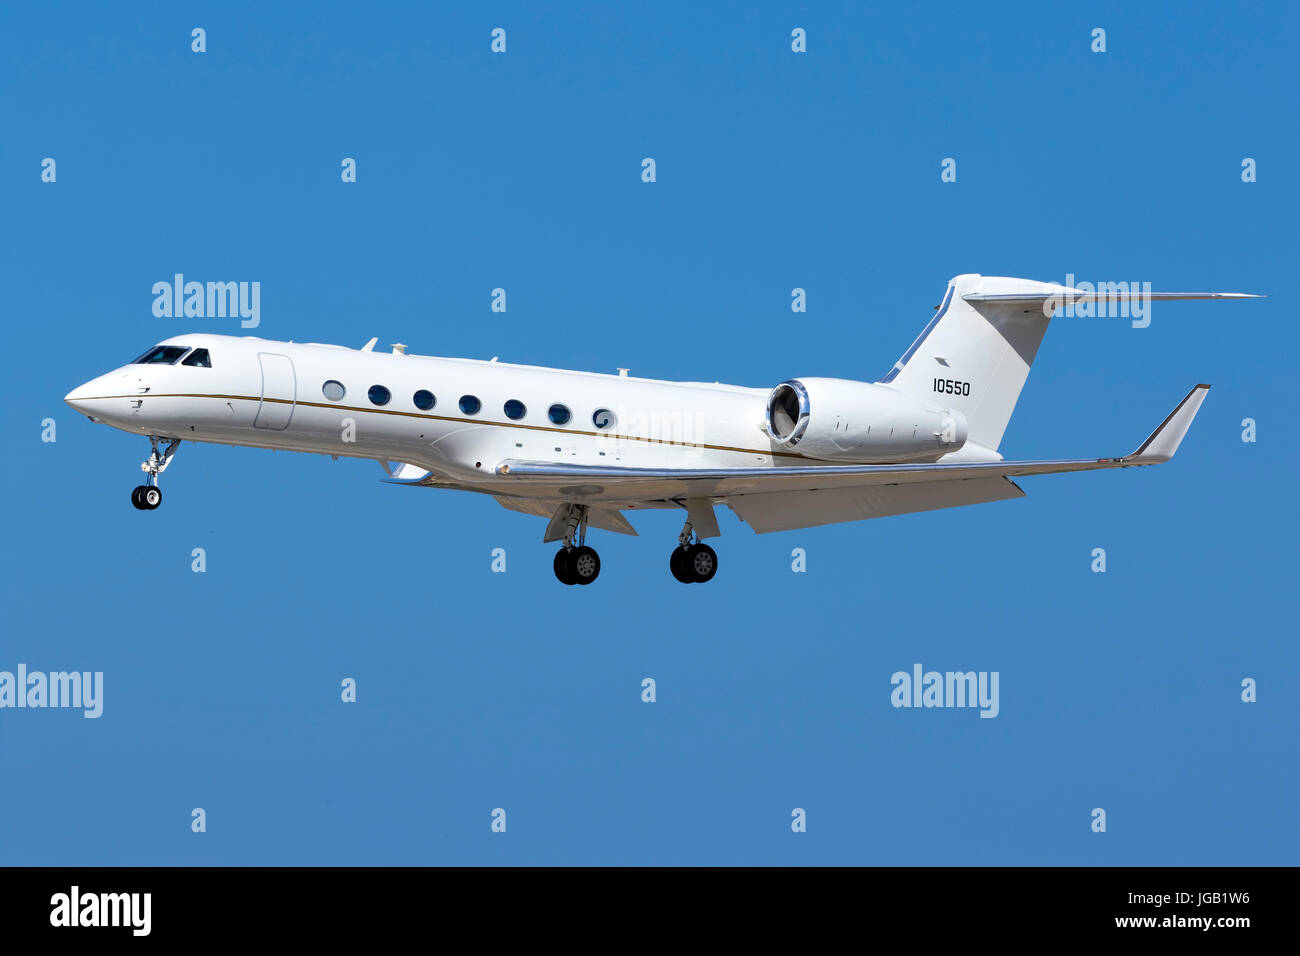 US Air Force Gulfstream Aerospace C-37B Gulfstream G550 (G-V-SP) [11-0550] on finals runway 31. - Stock Image